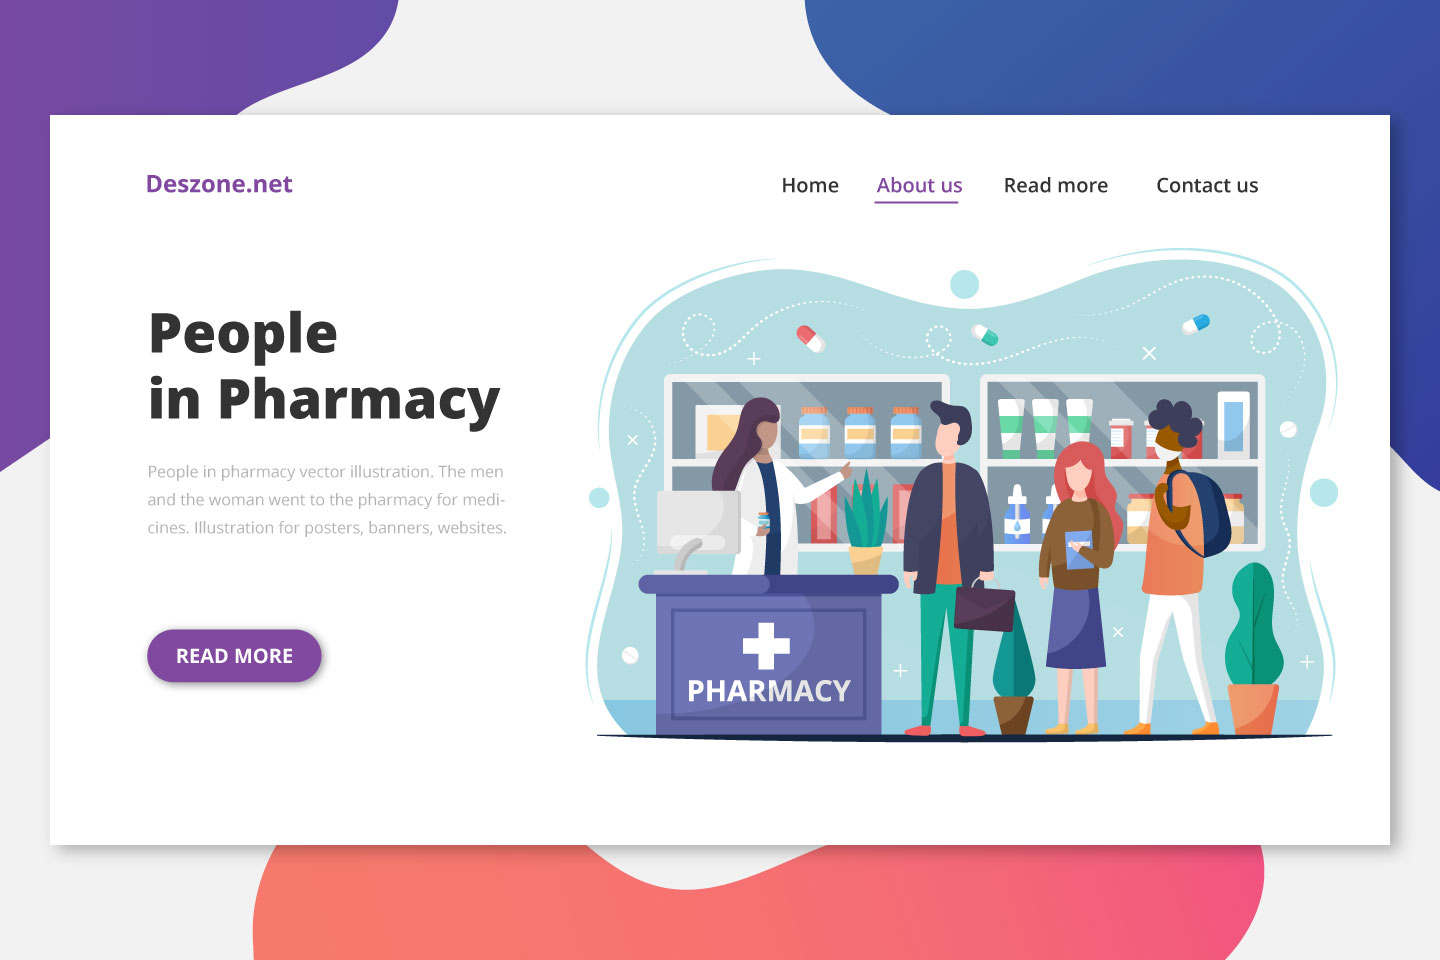 People in Pharmacy Vector Illustration